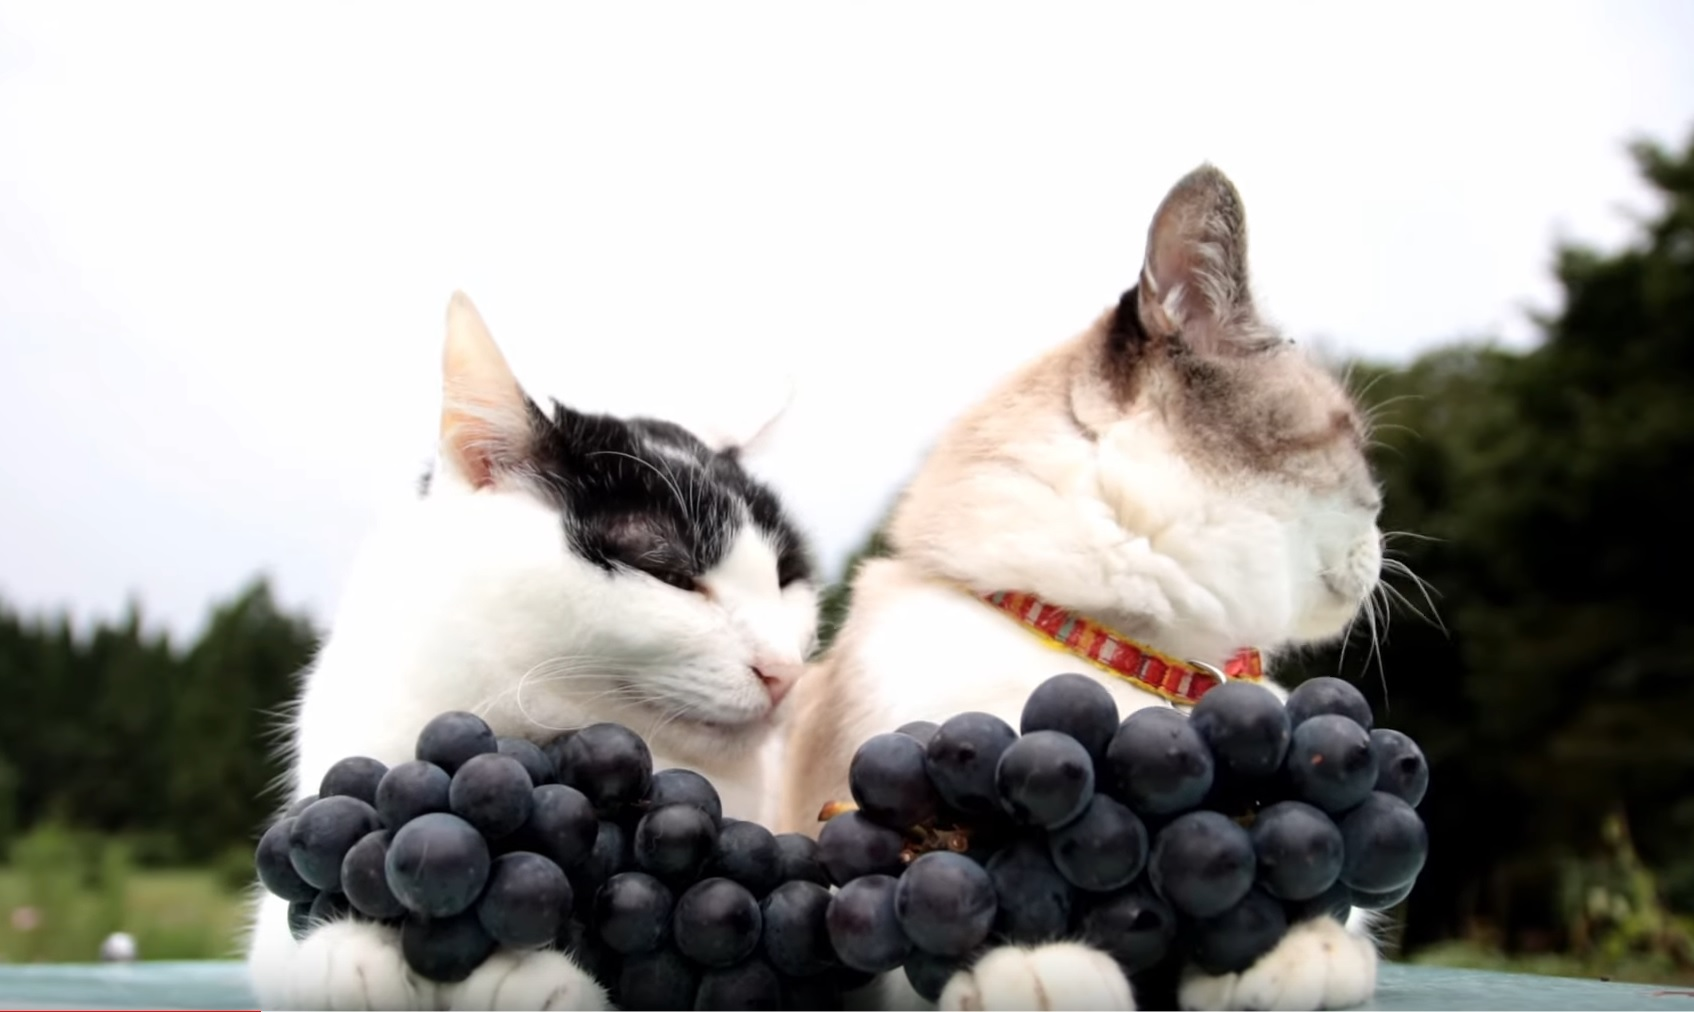 Kitties Have Grapes For Sale